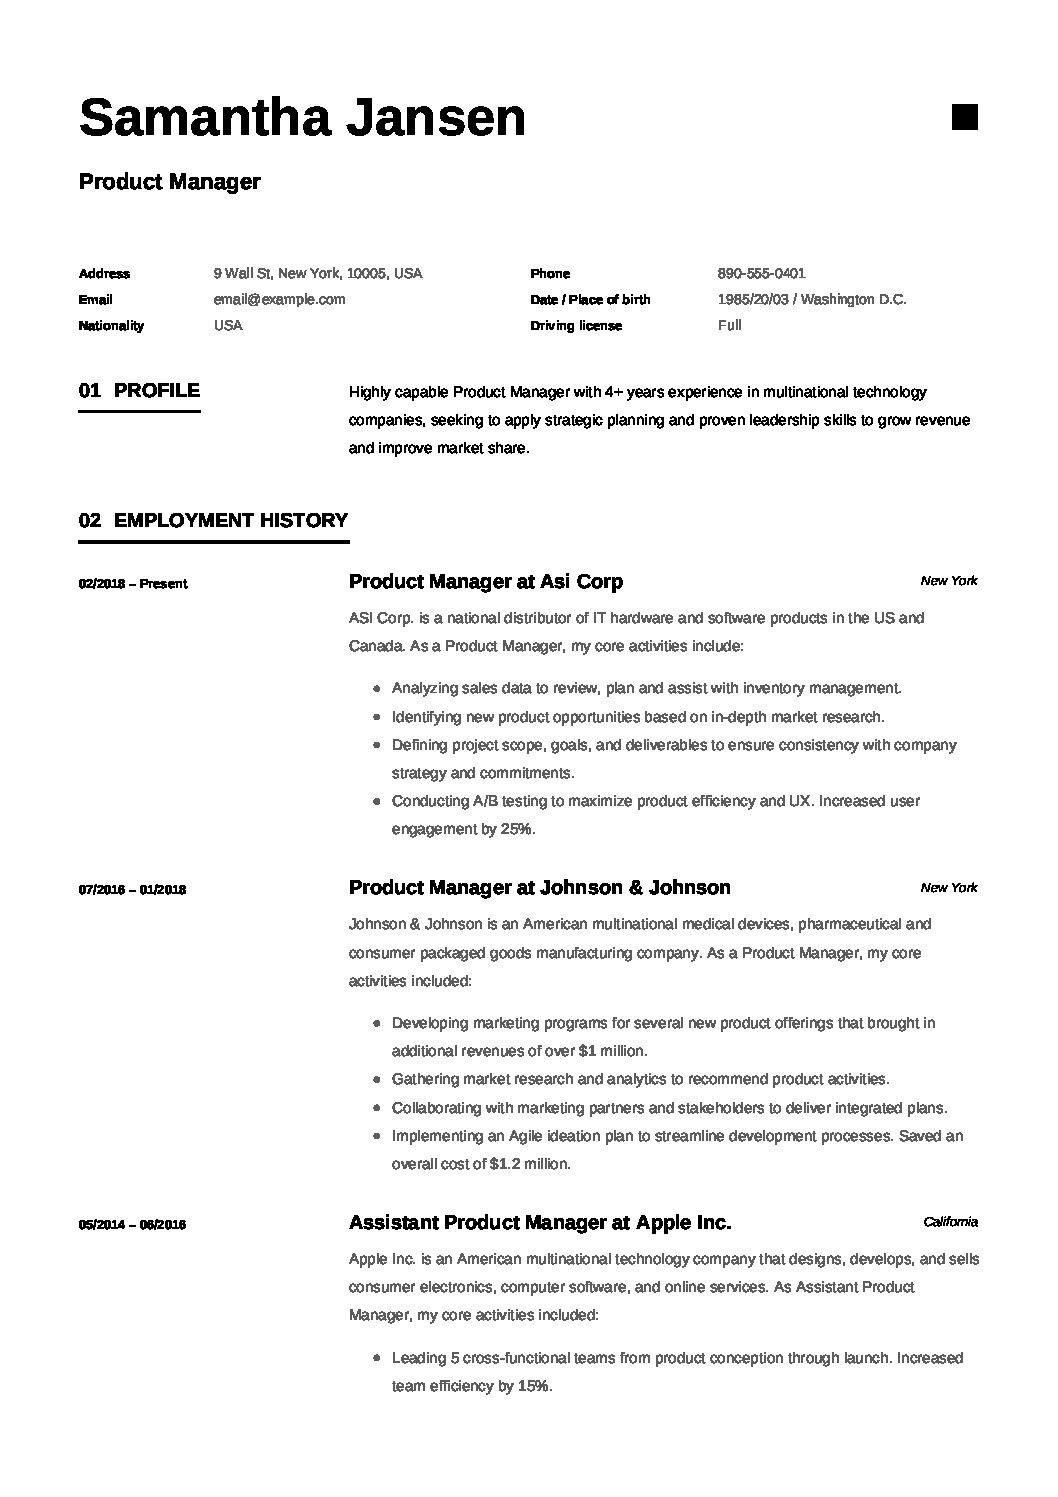 2018 product manager resume examples